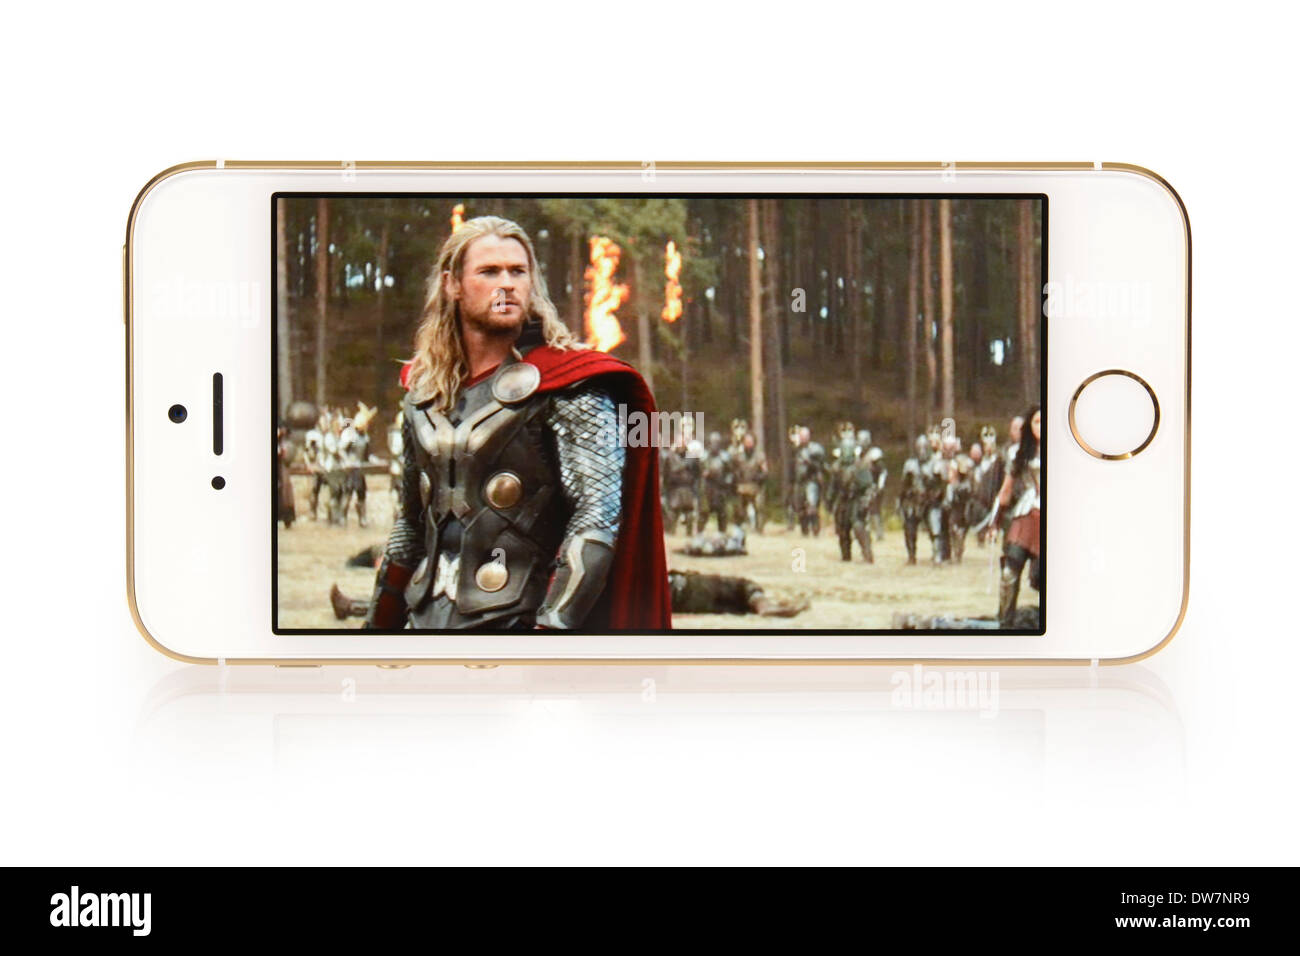 iTunes Movies, Movie Thor on iPhone 5S, 5 S - Stock Image